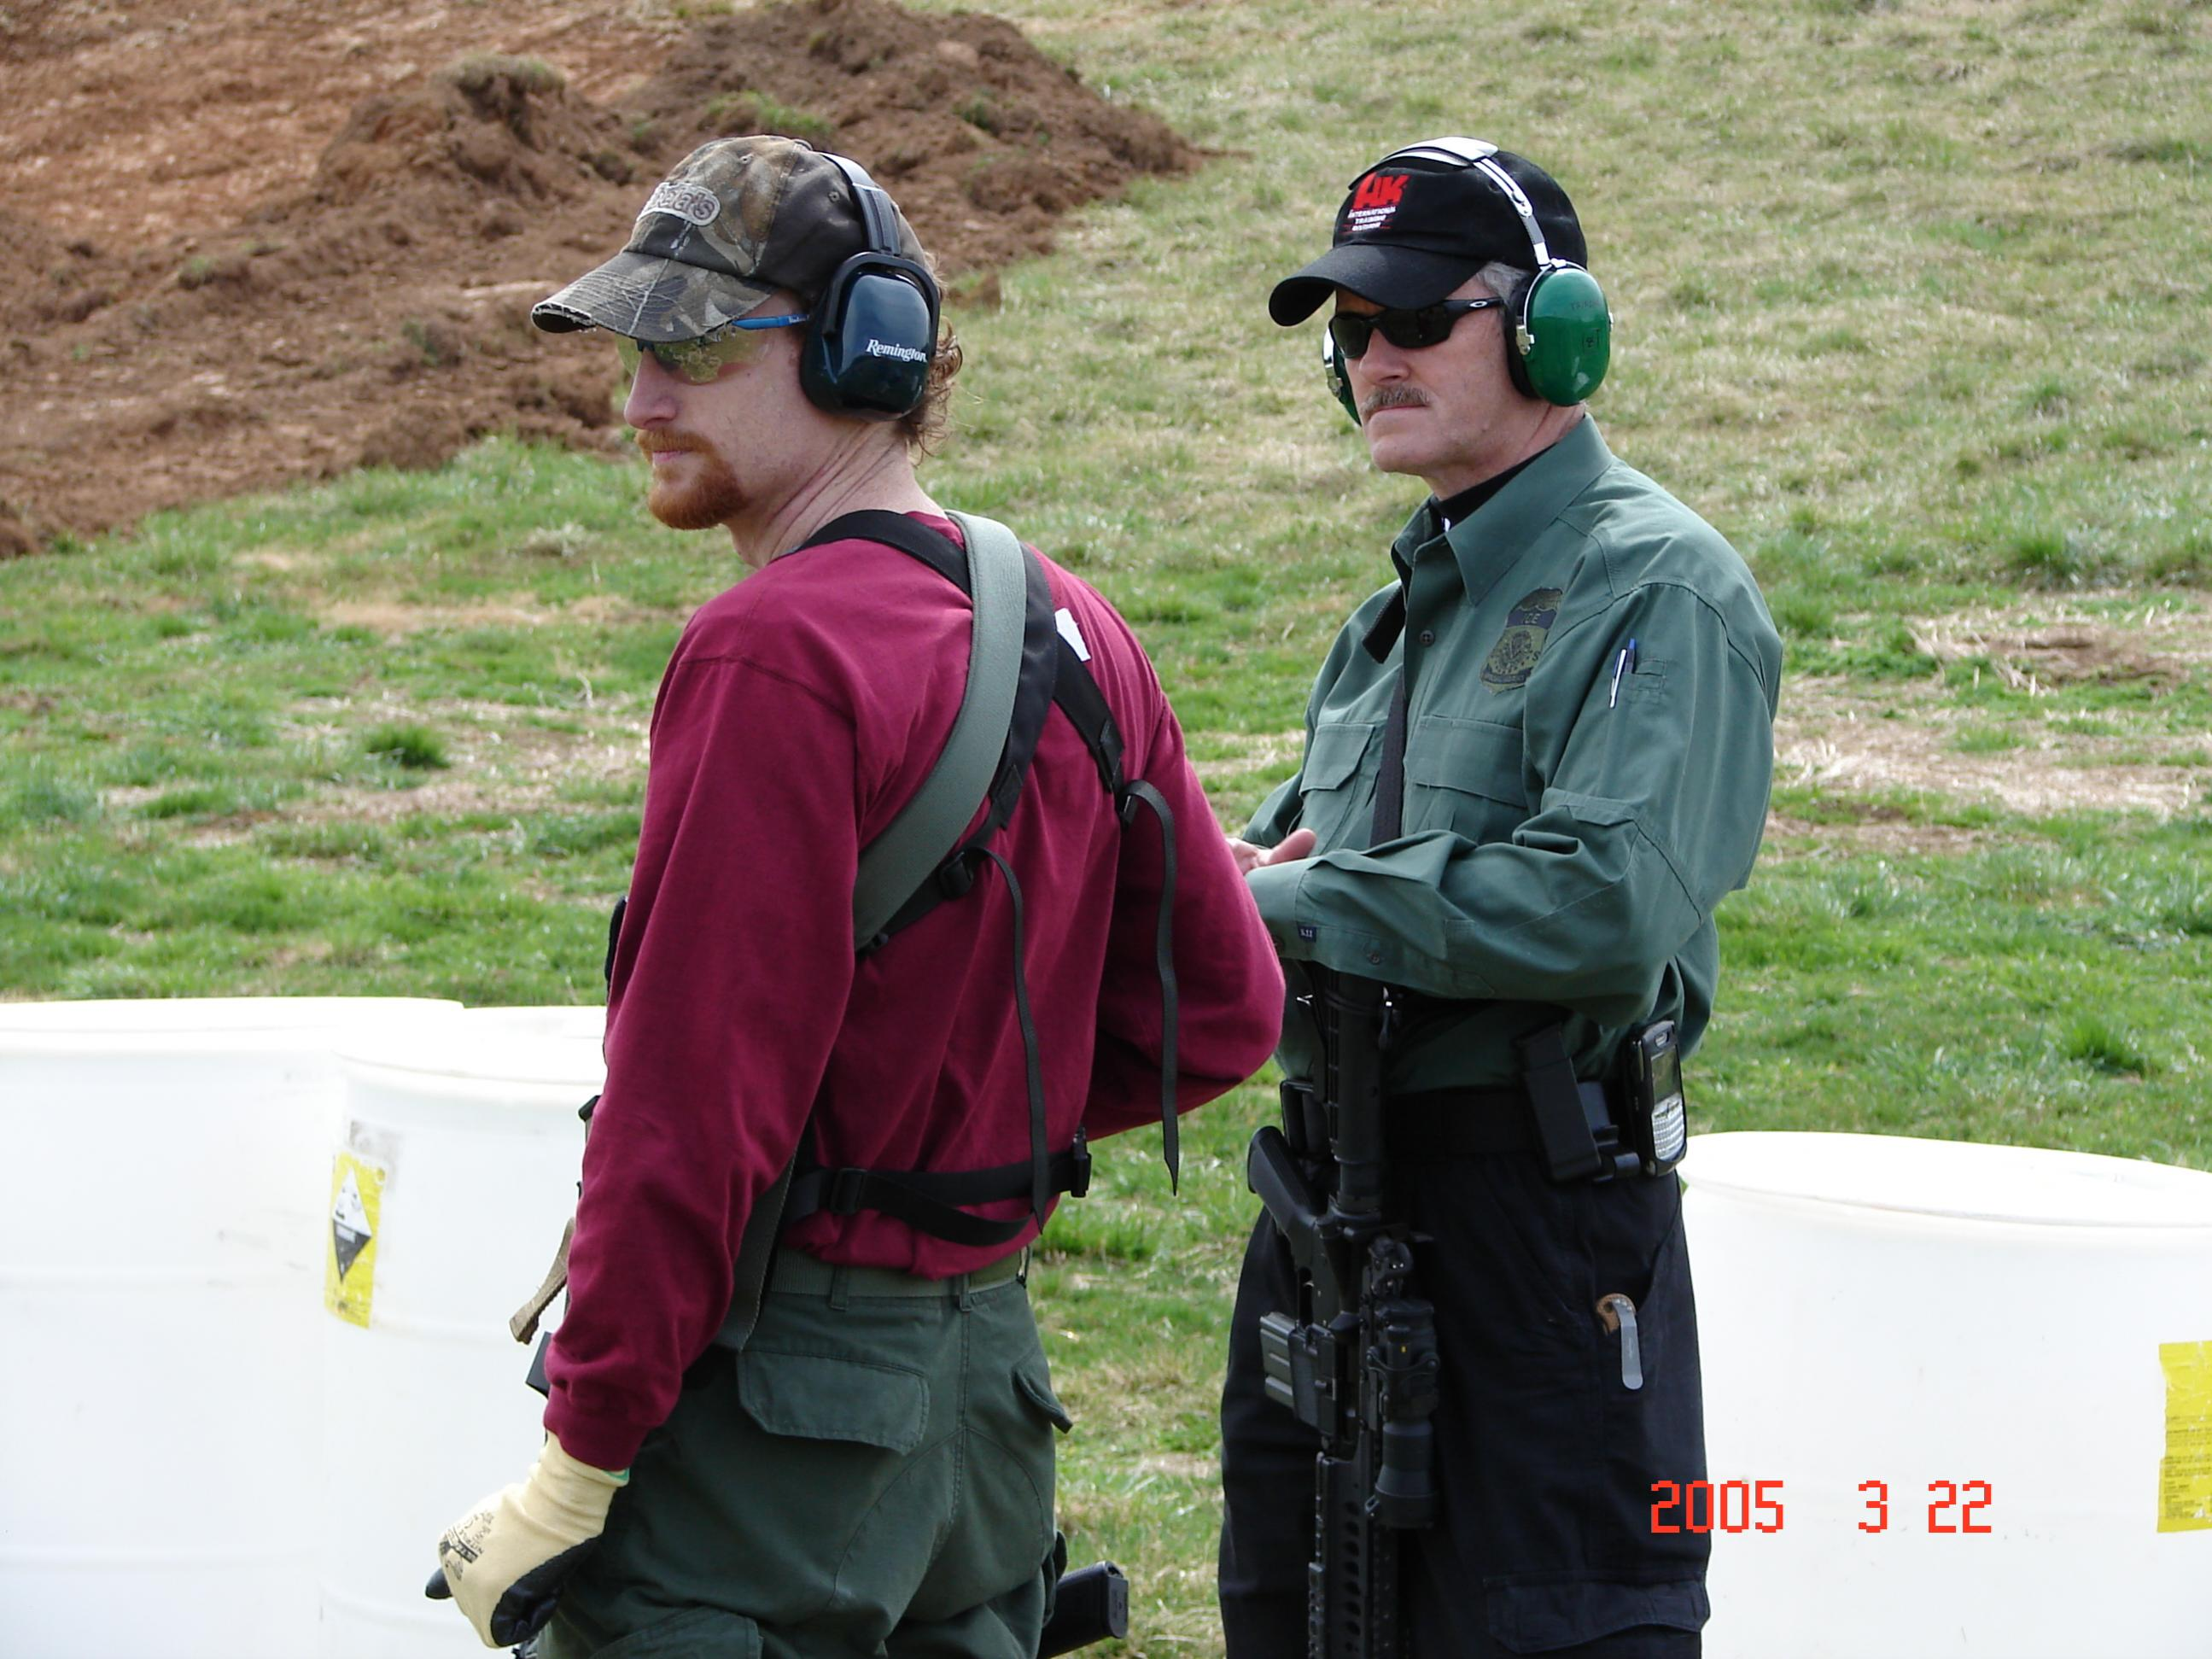 Pictures from the PTTA M4/ Tactical Carbine Course-028.jpg